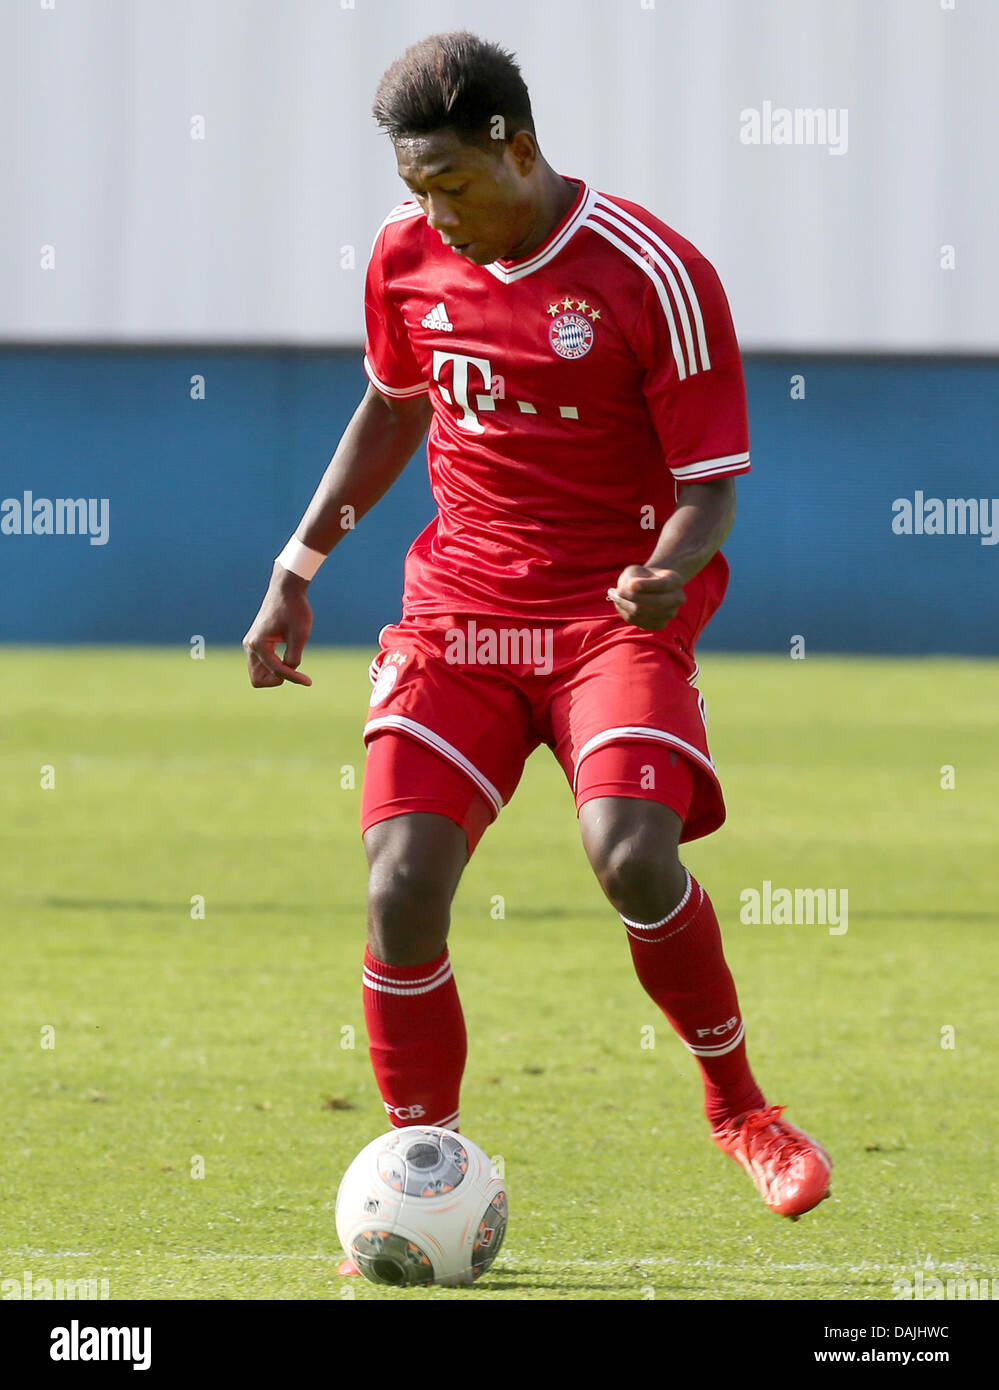 Bayern Munich's David Alaba in action during the charity soccer match  between FC Hansa Rostock and FC Bayern Munich at the DKB-Arena soccer  stadium in ...